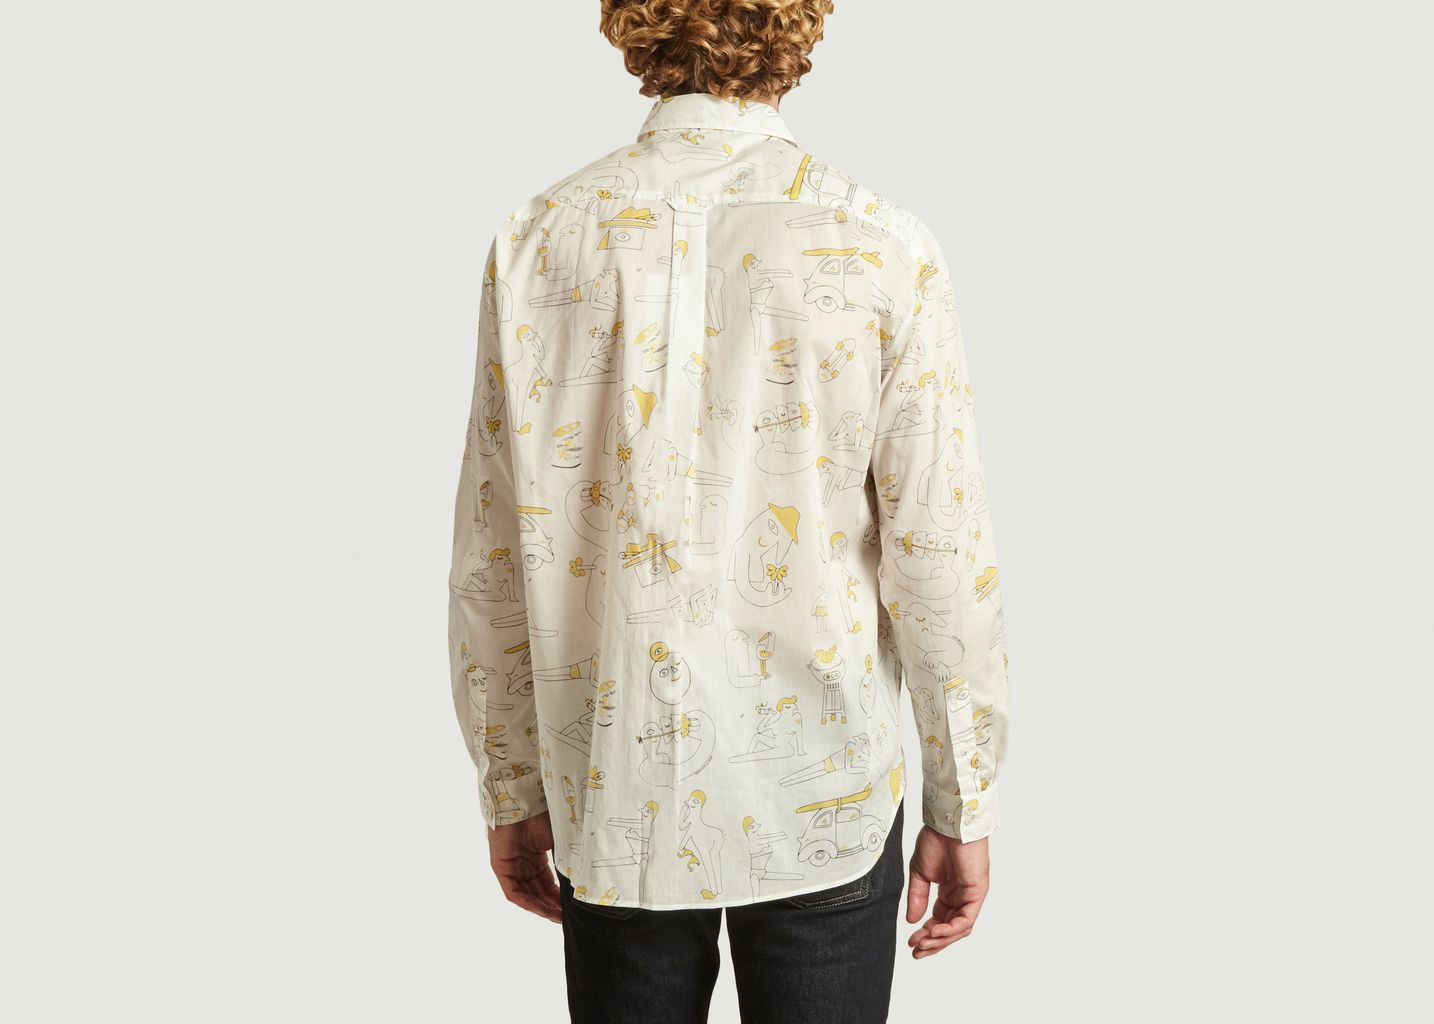 Chemise à imprimé abstrait Band Of Outsiders x Amit  - Band Of Outsiders